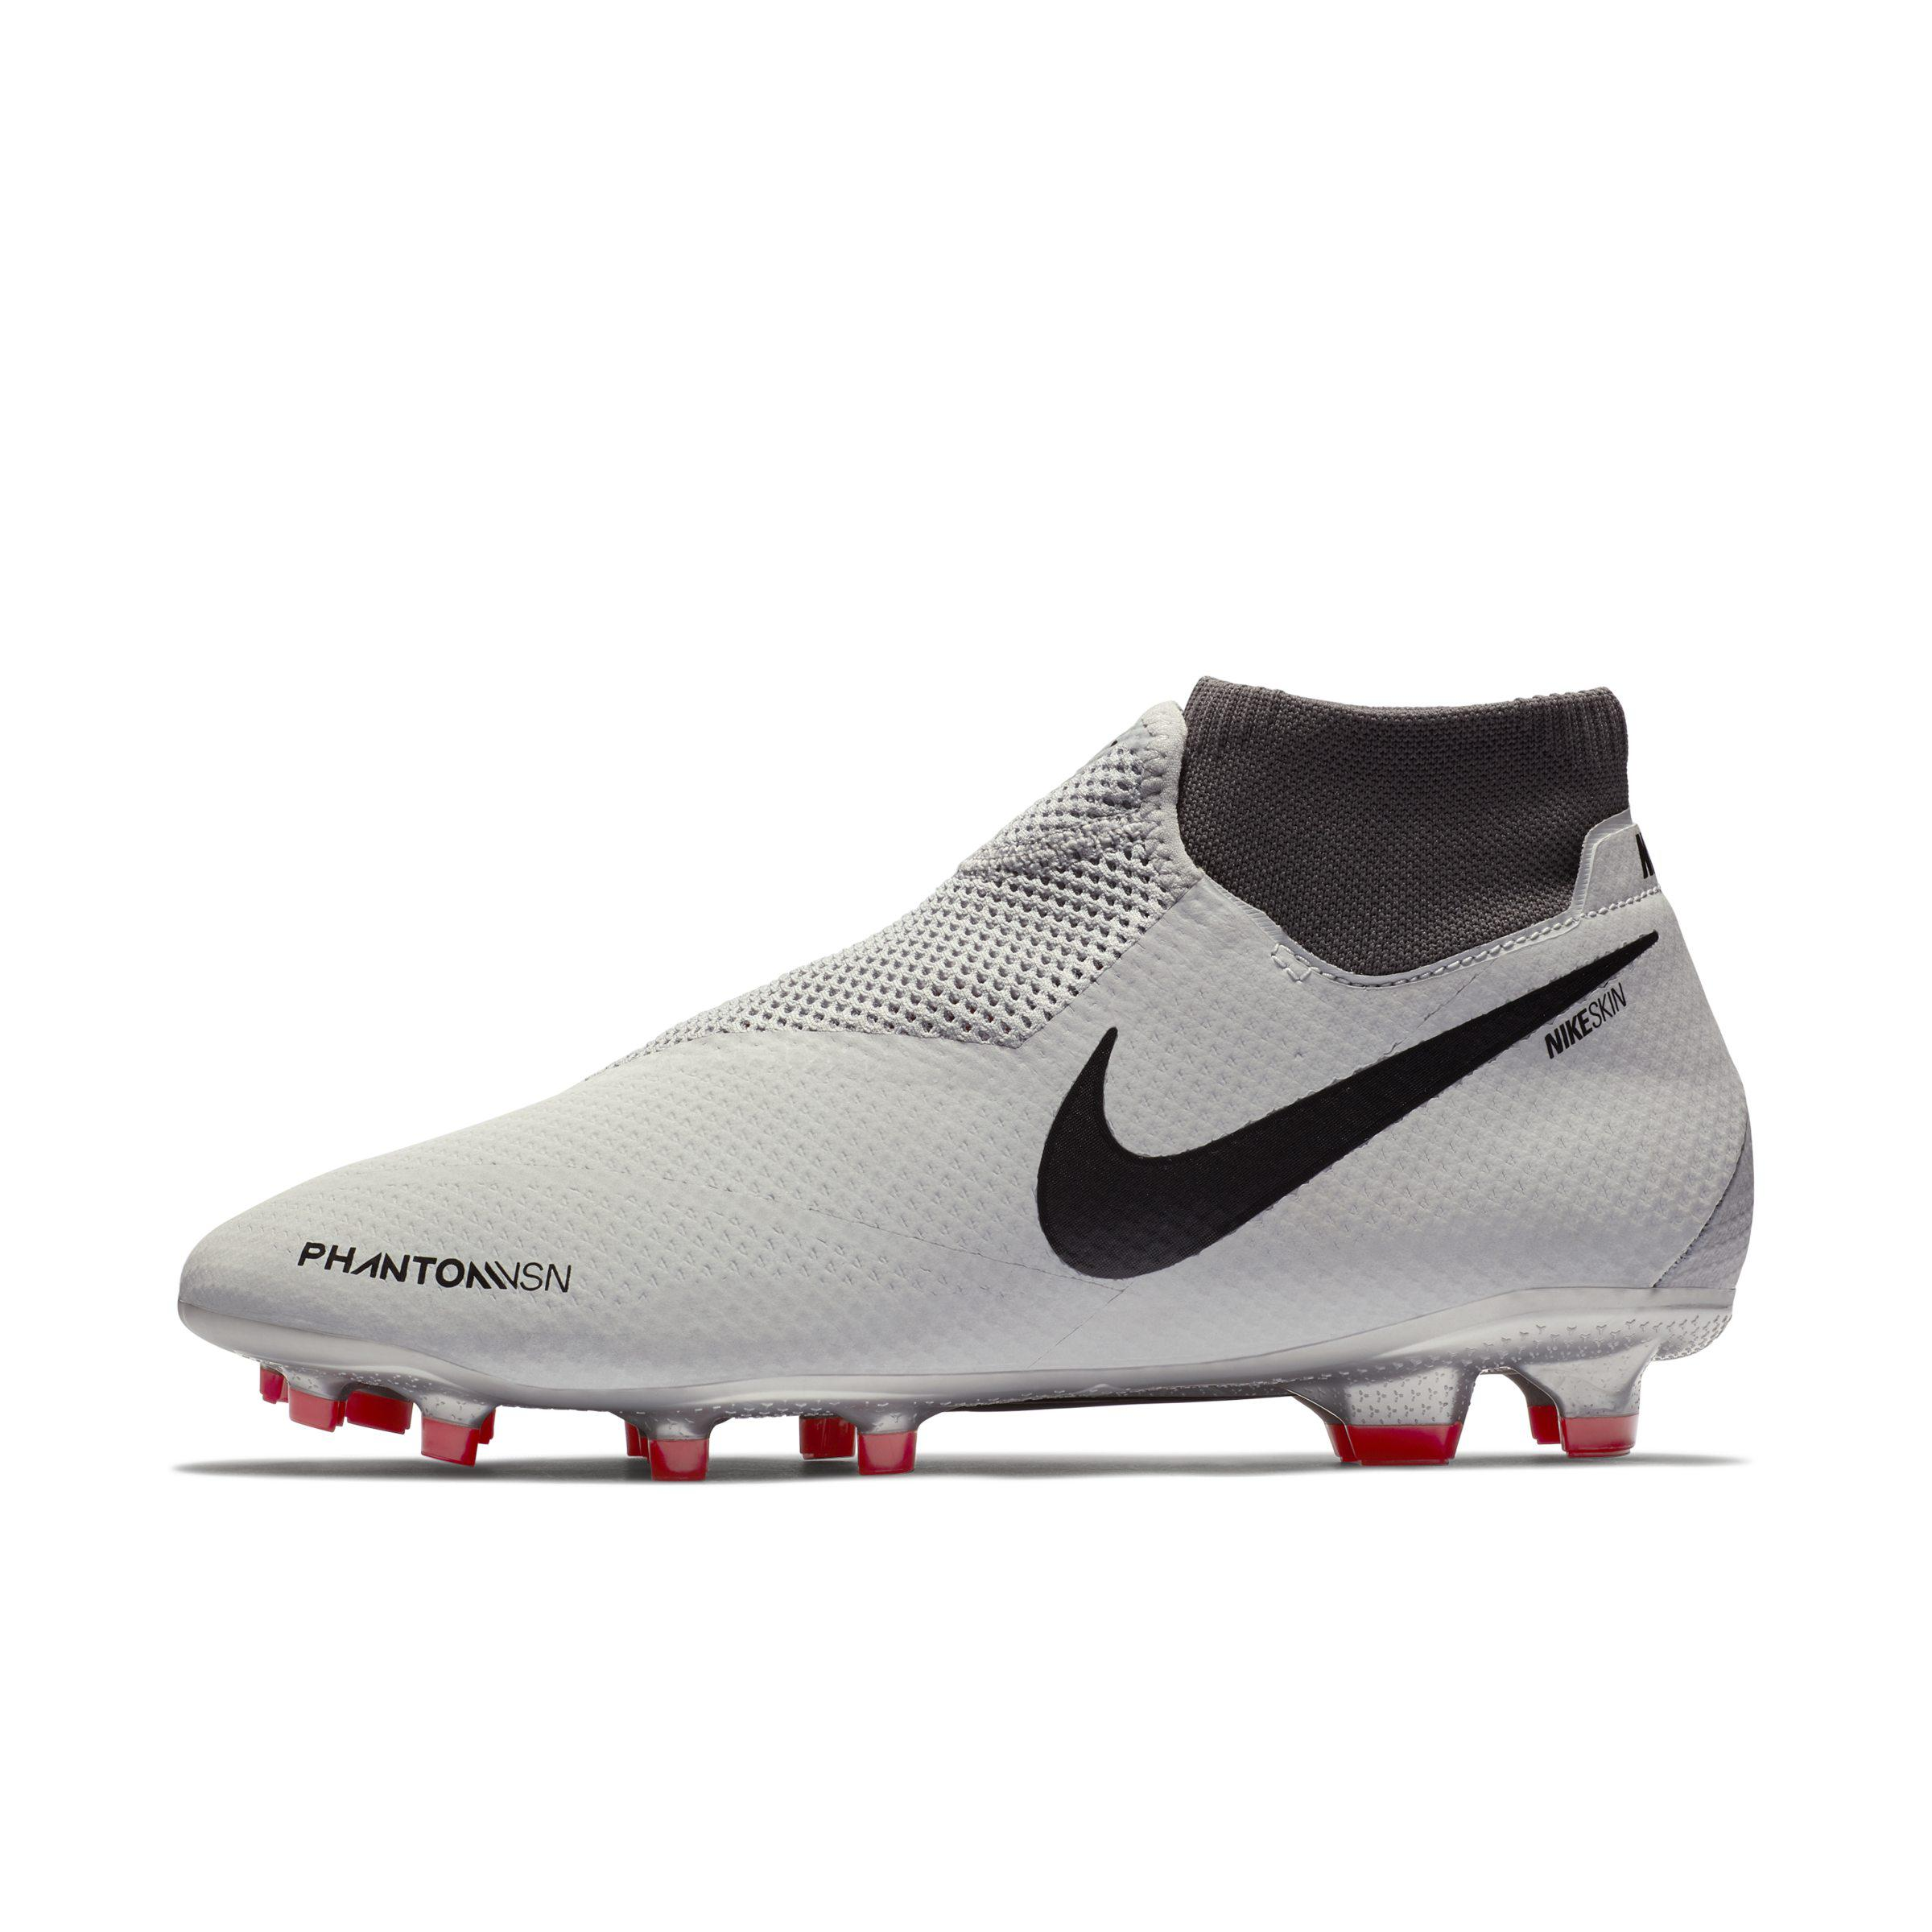 best website 109ae ef61c Nike Phantom Vision Pro Dynamic Fit Firm-ground Football Boot in ...